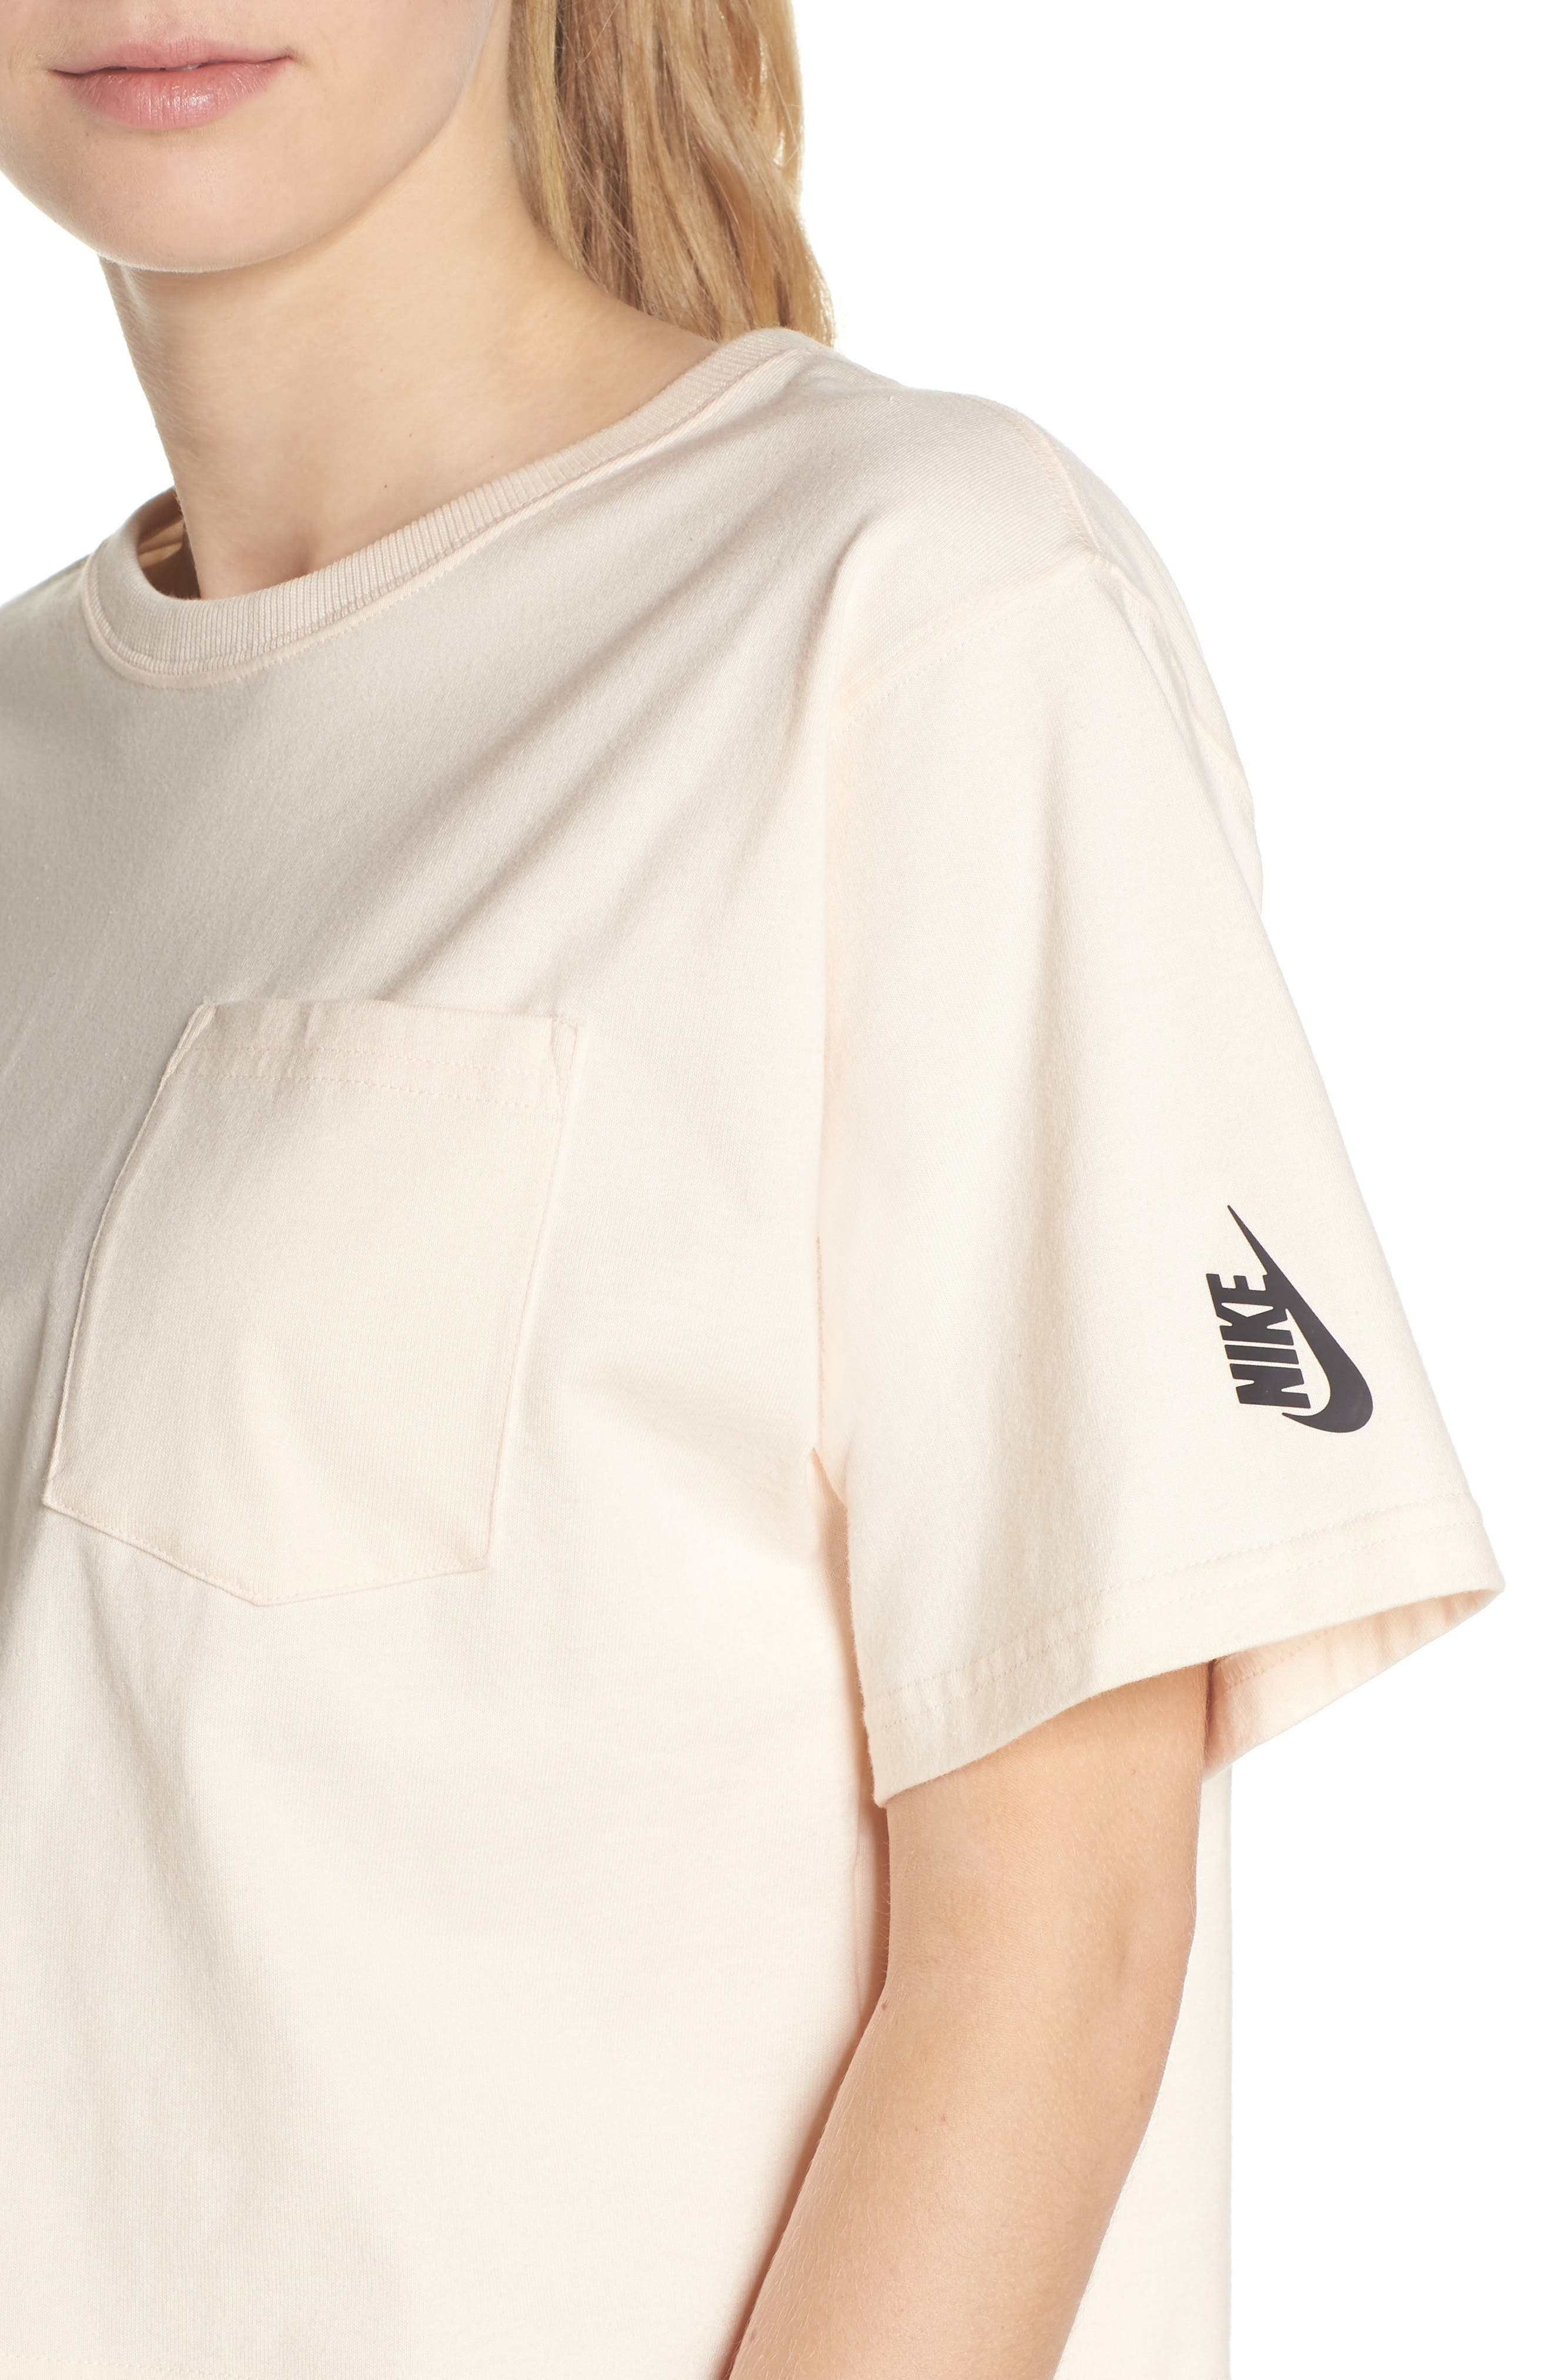 NikeLab Collection Crop Tee,                             Alternate thumbnail 4, color,                             Guava Ice/ Black